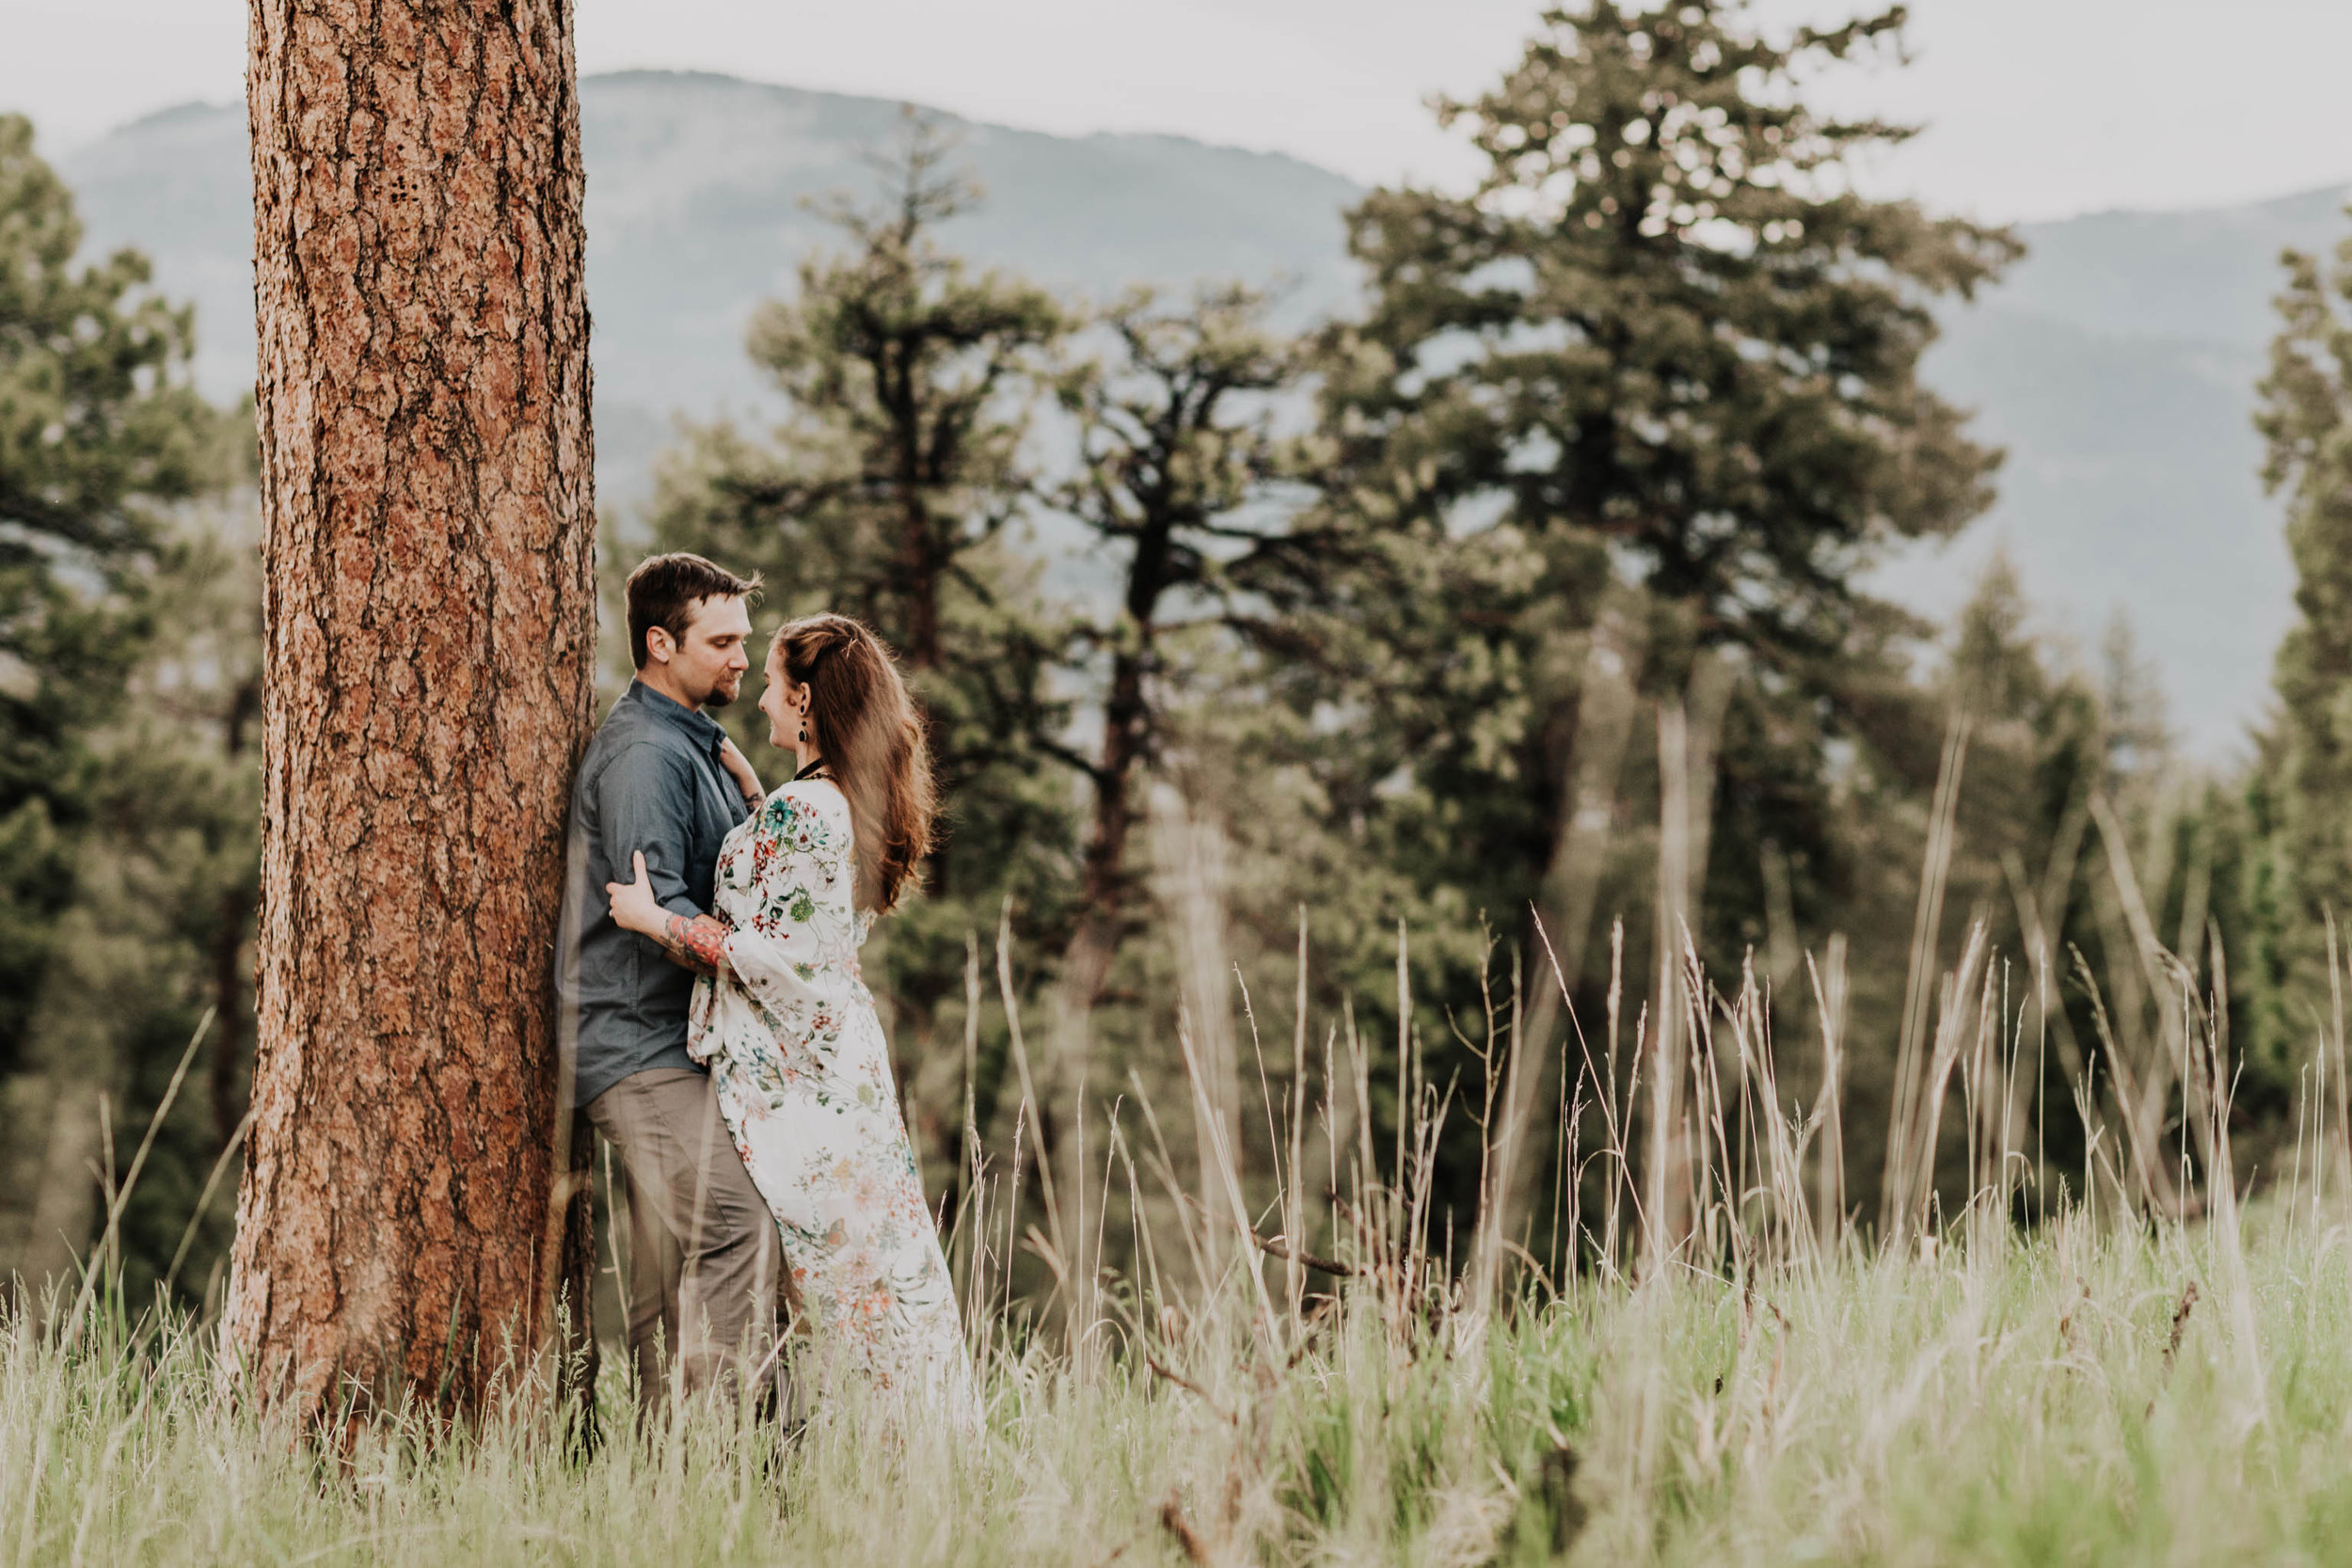 Sheena_Shahangian_Photography_Engagement_Photo_Shoot_Shelby_and_Andrew_Boulder_Colorado-133.jpg